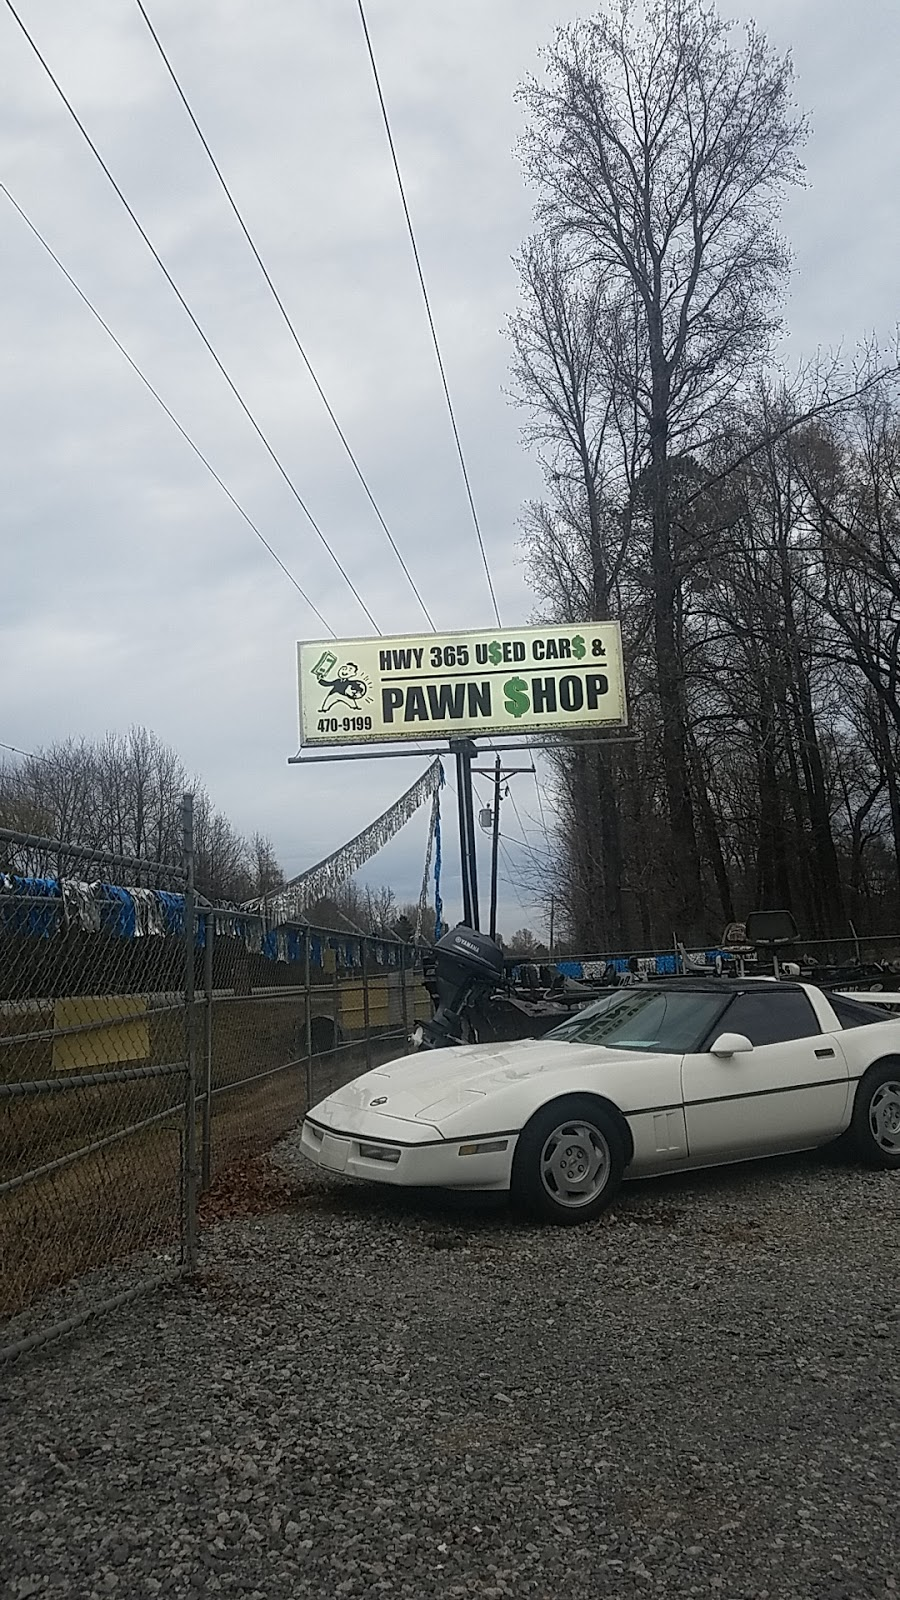 Used Cars Conway Ar >> Highway 365 Used Cars & Pawn Shop - Pawn Shop in Mayflower ...